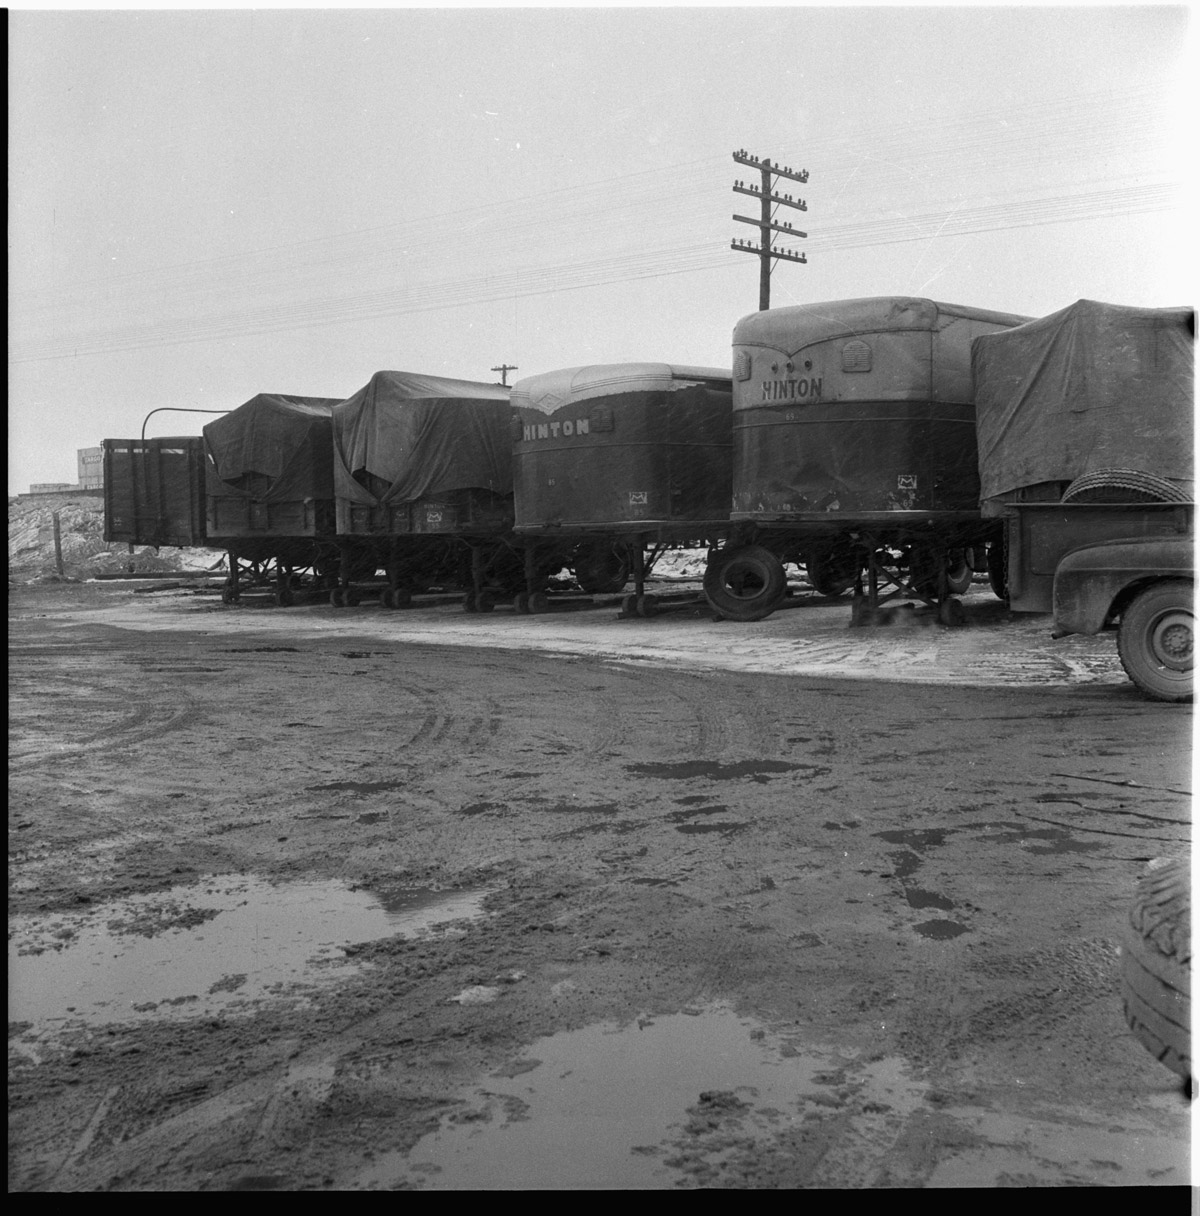 Line of transport trailers withe their covering tarps burned.